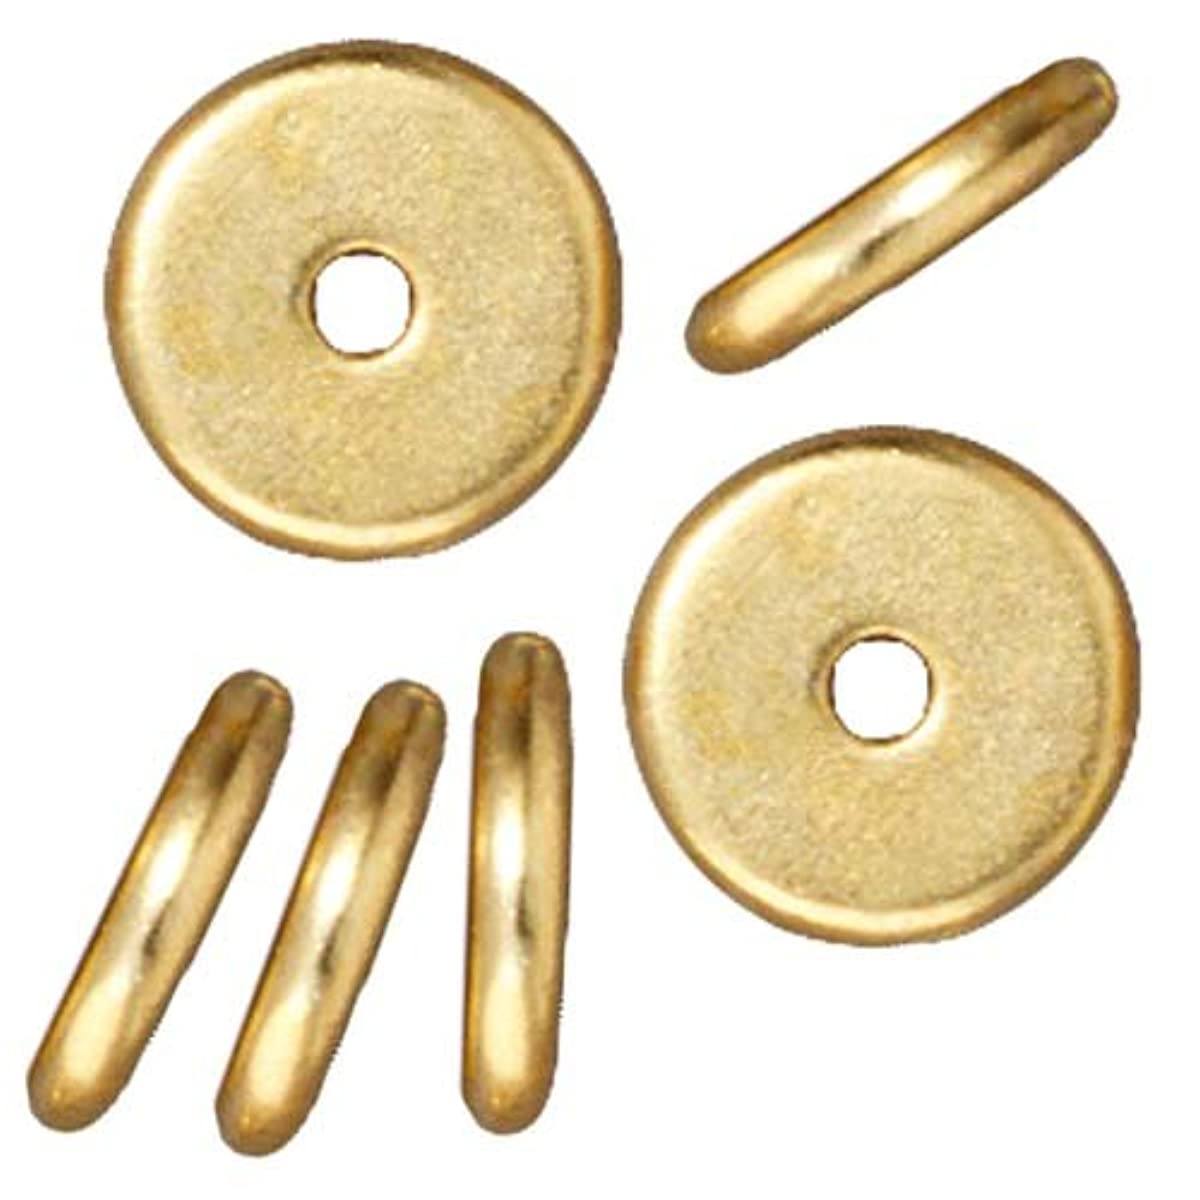 TierraCast Bright 22K Gold Plated Lead-Free Pewter Disk Heishi Spacer Beads 8mm (10)